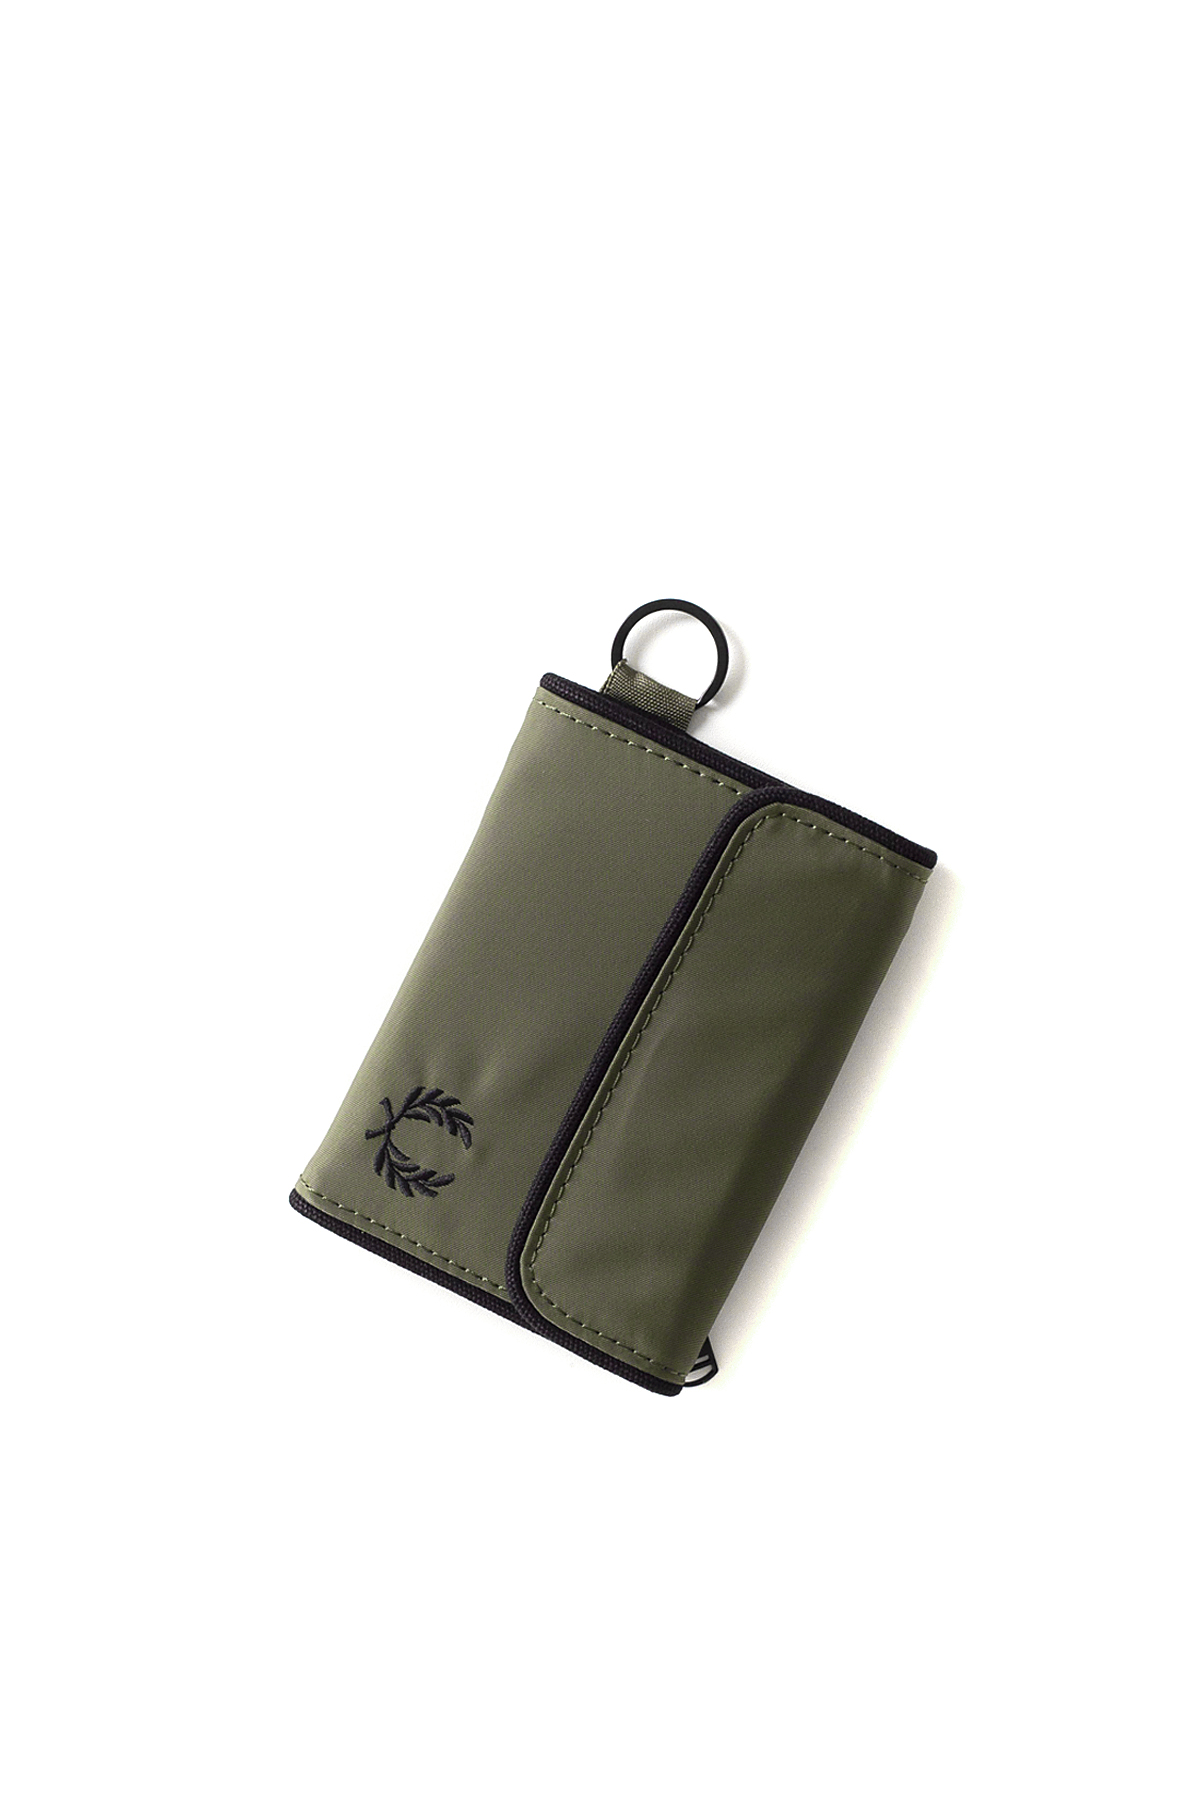 FRED PERRY : Sport Nylon Wallet (Khaki)